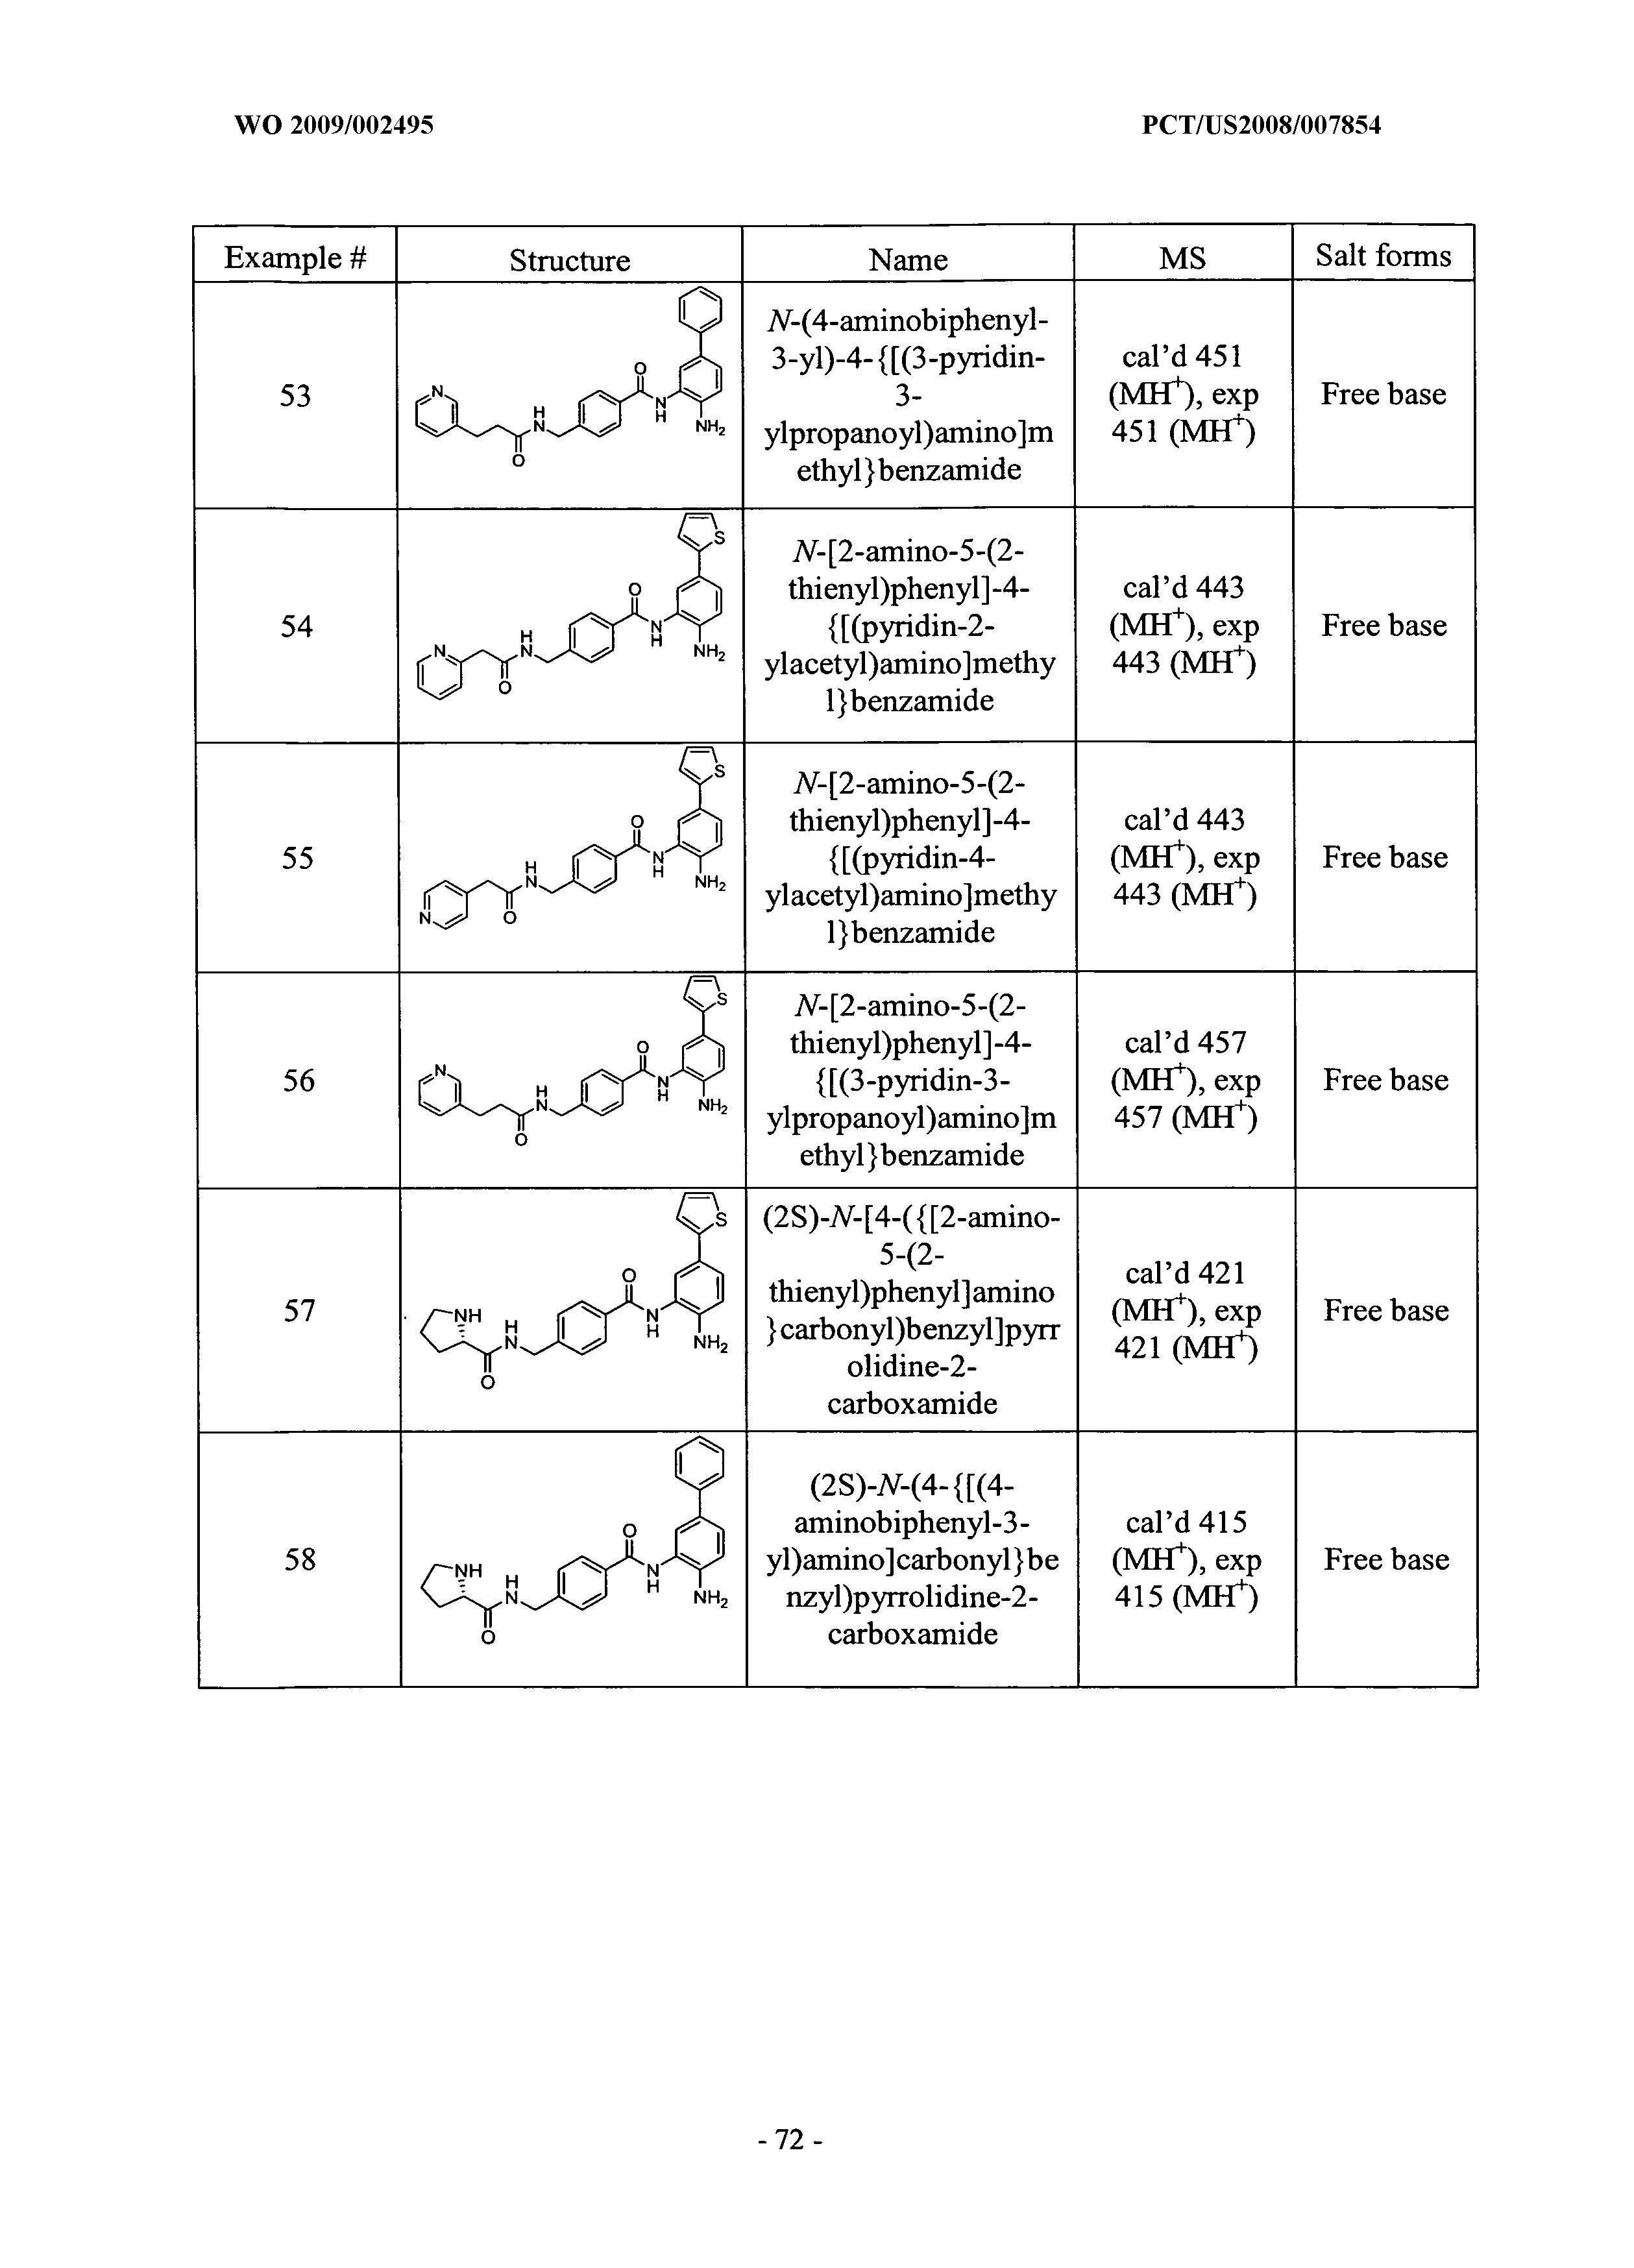 WO 2009/002495 A1 - 4-carboxybenzylamino Derivatives As